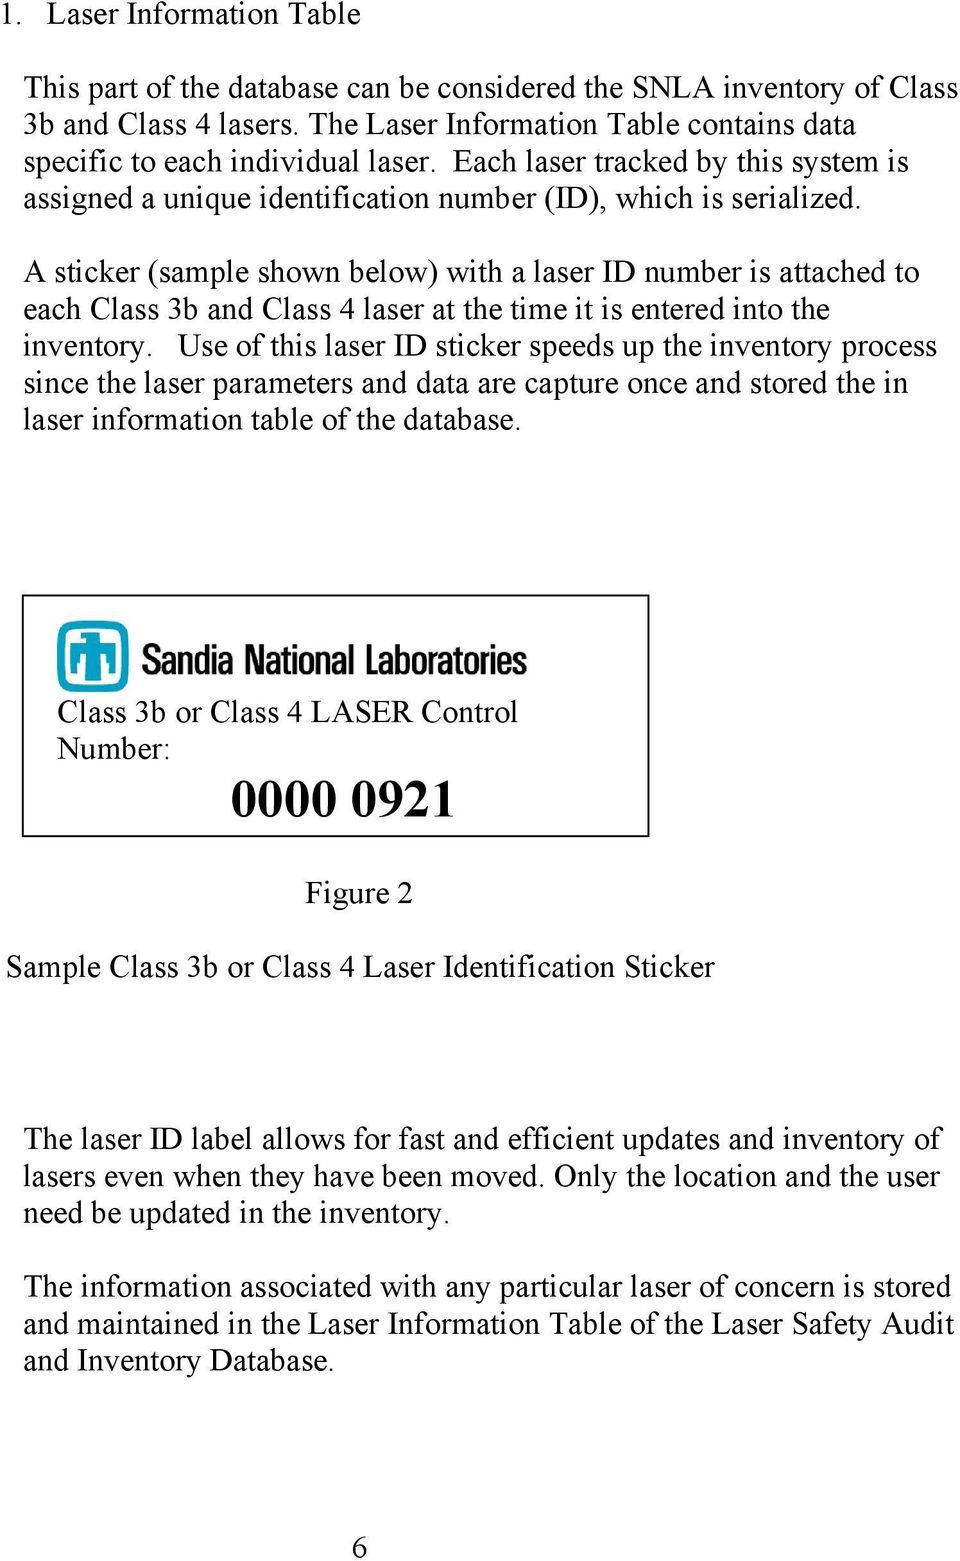 A sticker (sample shown below) with a laser ID number is attached to each Class 3b and Class 4 laser at the time it is entered into the inventory.